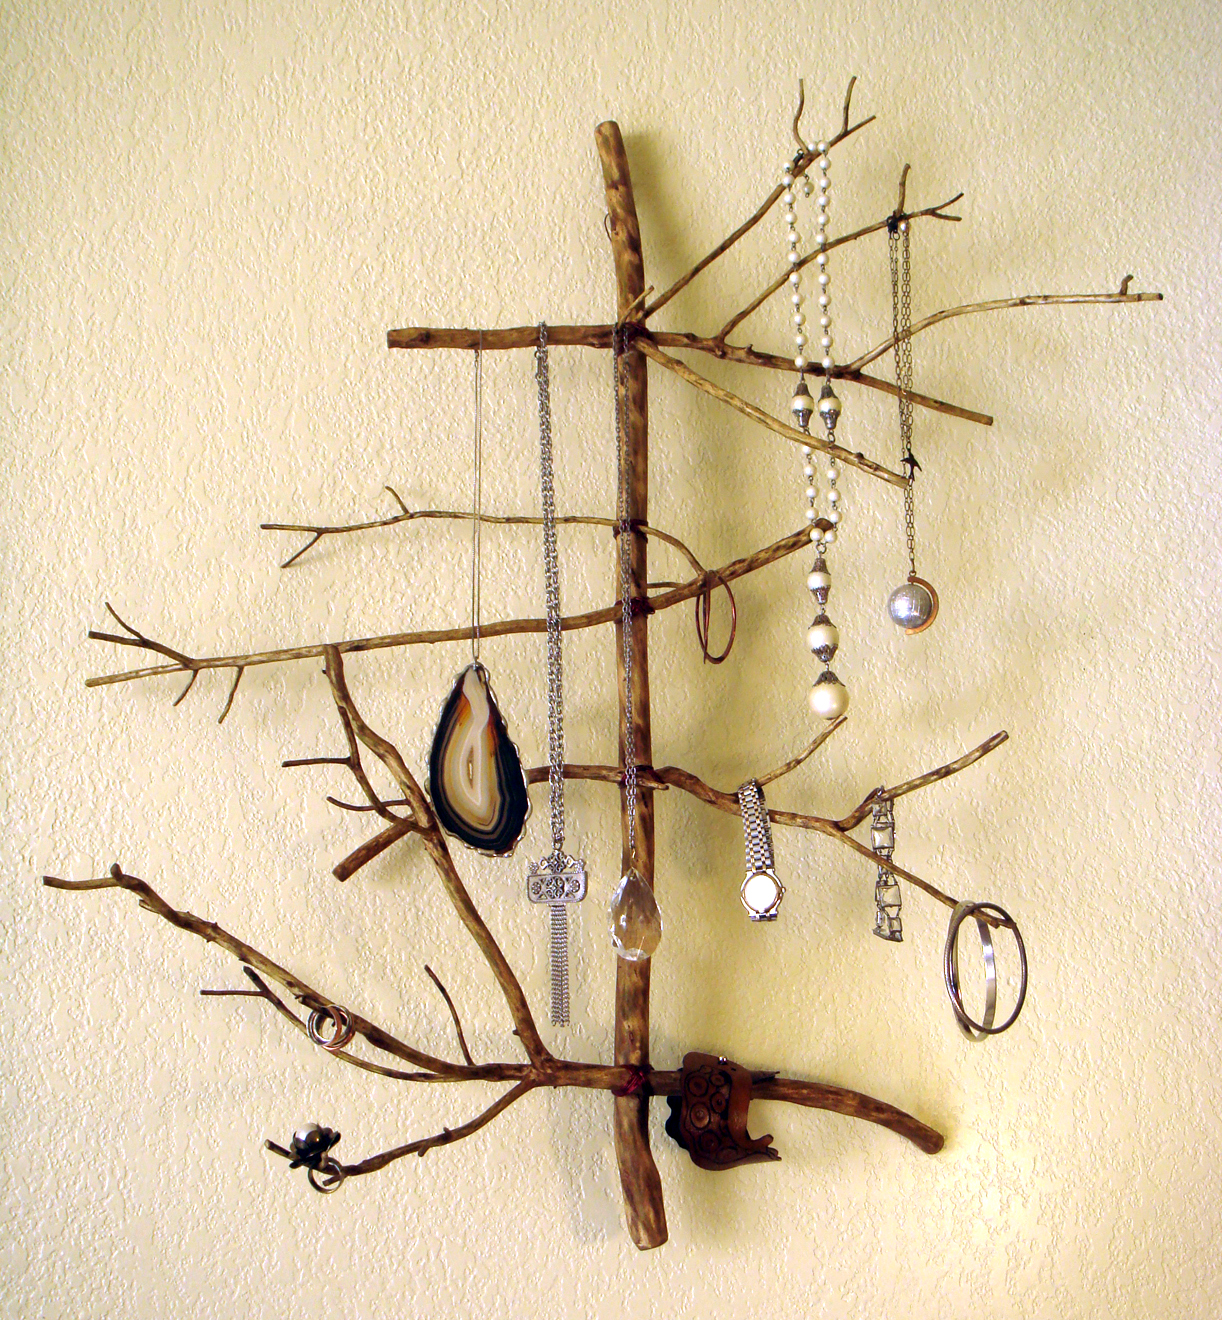 Diy rustic wooden jewelry hanger for wall, made from twigs. Creative jewelry display or jewelry storage ideas.